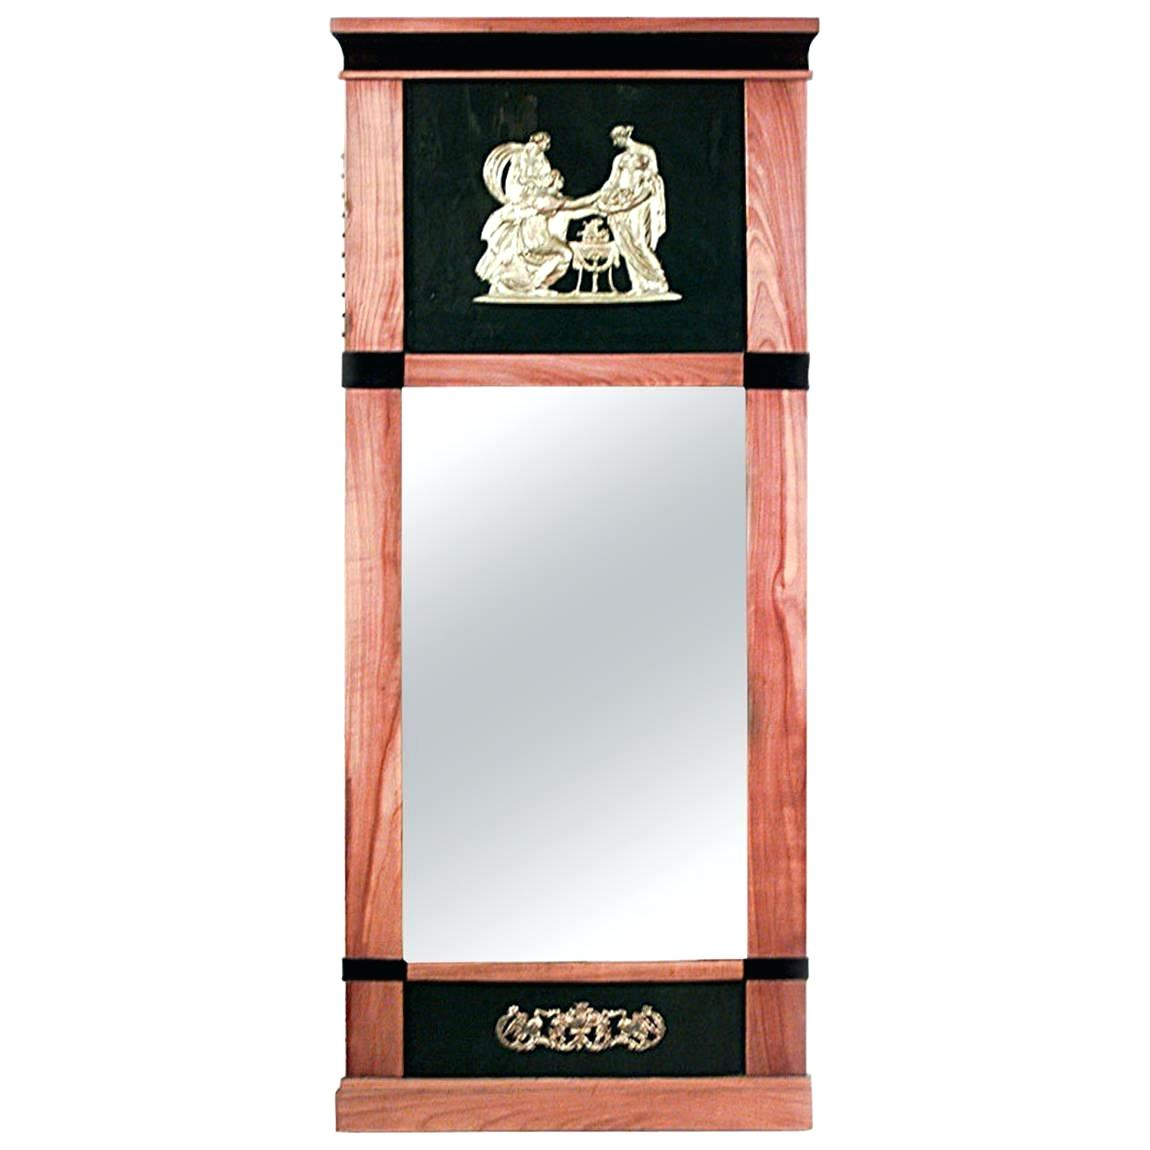 Vertical Wall Mirror Arch Top Vertical Wall Mirror Orren pertaining to Pennsburg Rectangle Wall Mirrors (Image 26 of 30)